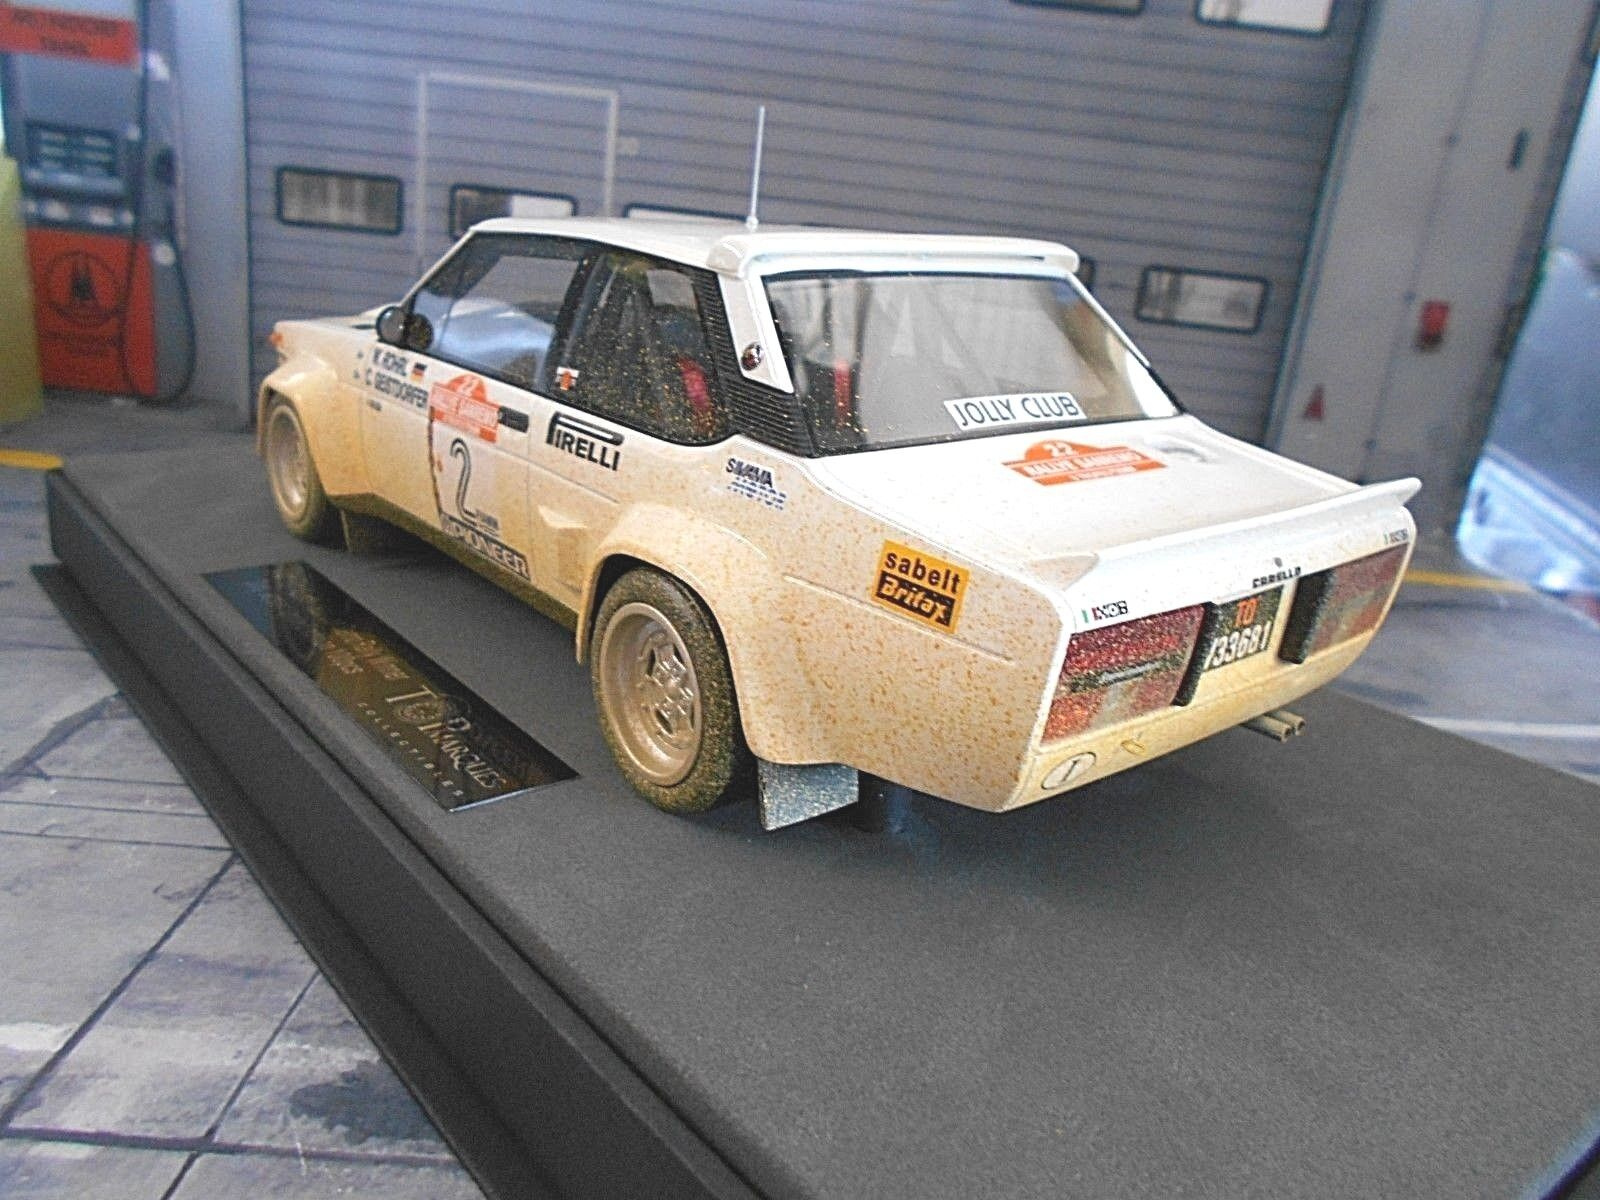 Fiat 131 Abarth Rallye San Remo Remo Remo 1980 Winner #2 Röhrl Dirty Royaume Top Marques 1:18 | Outlet Online Shop